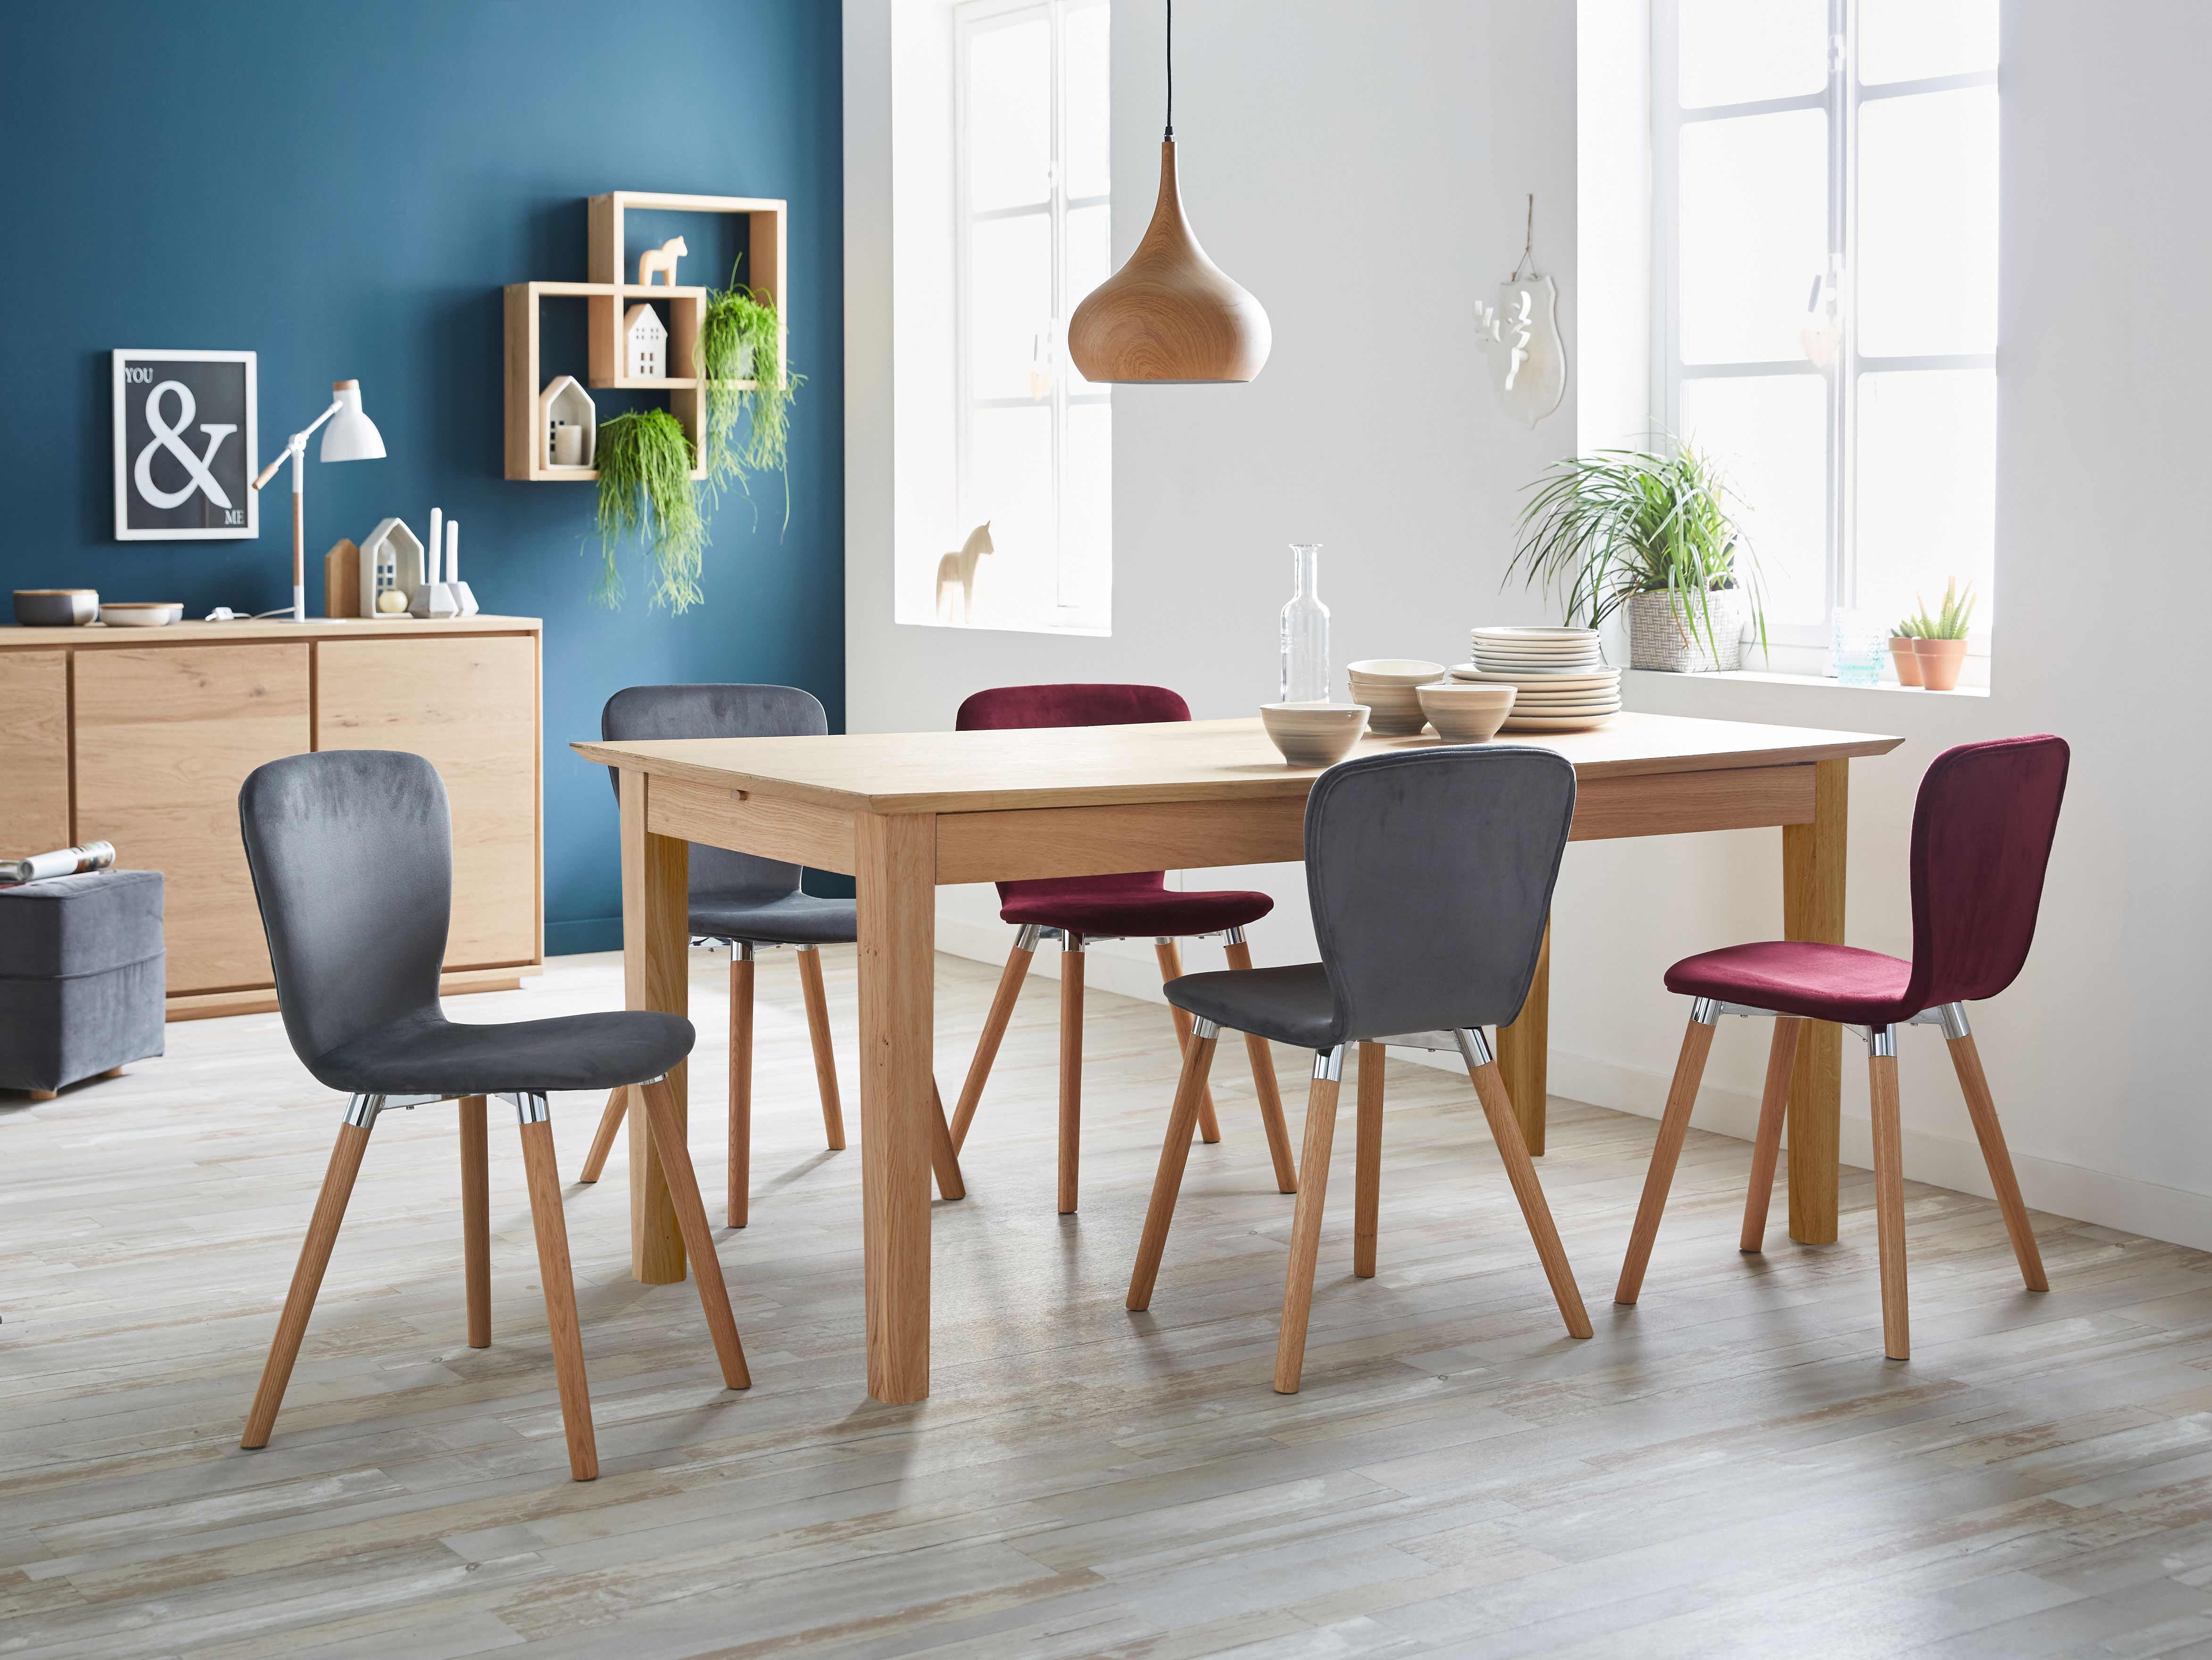 Meuble Stockholm Alinea Alinea Stockholm Table En Chêne Allonges Papillons L 180cm à